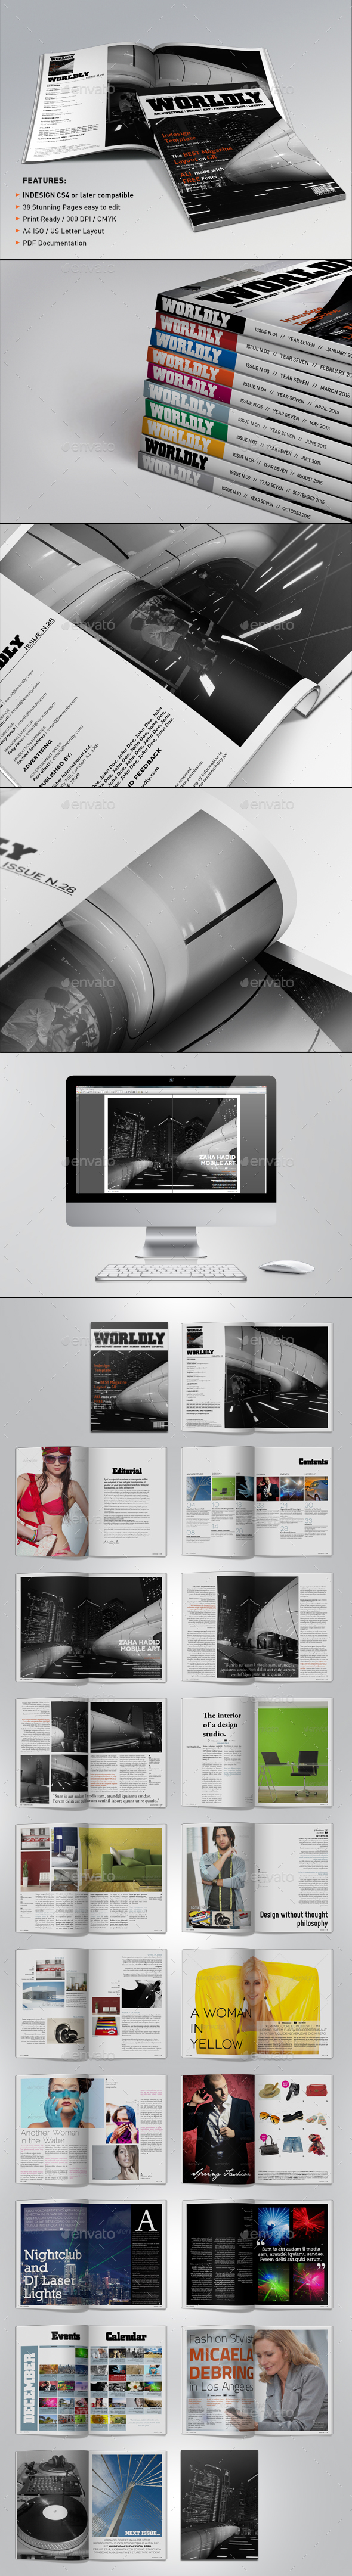 Wordly Magazine Indesign Template - Magazines Print Templates